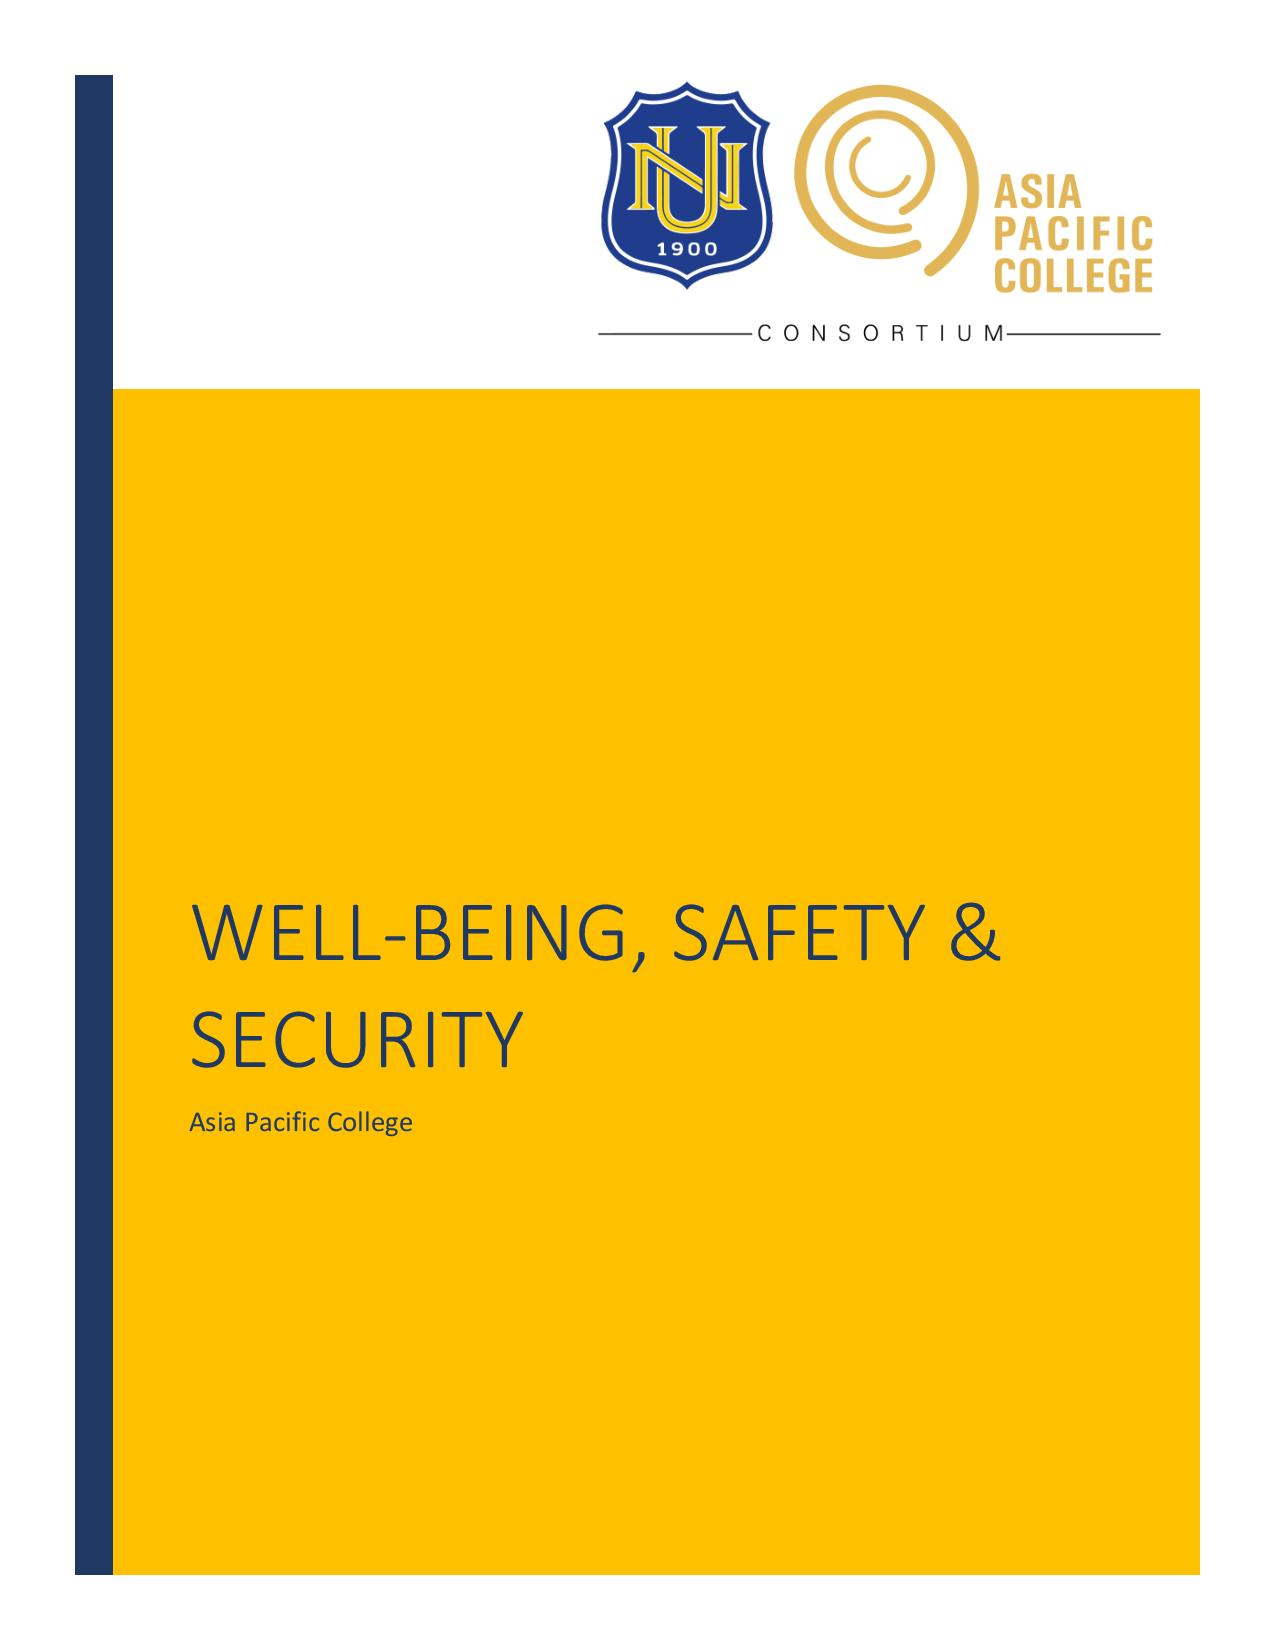 3. Safety and Security F_1 May 2020-page-001